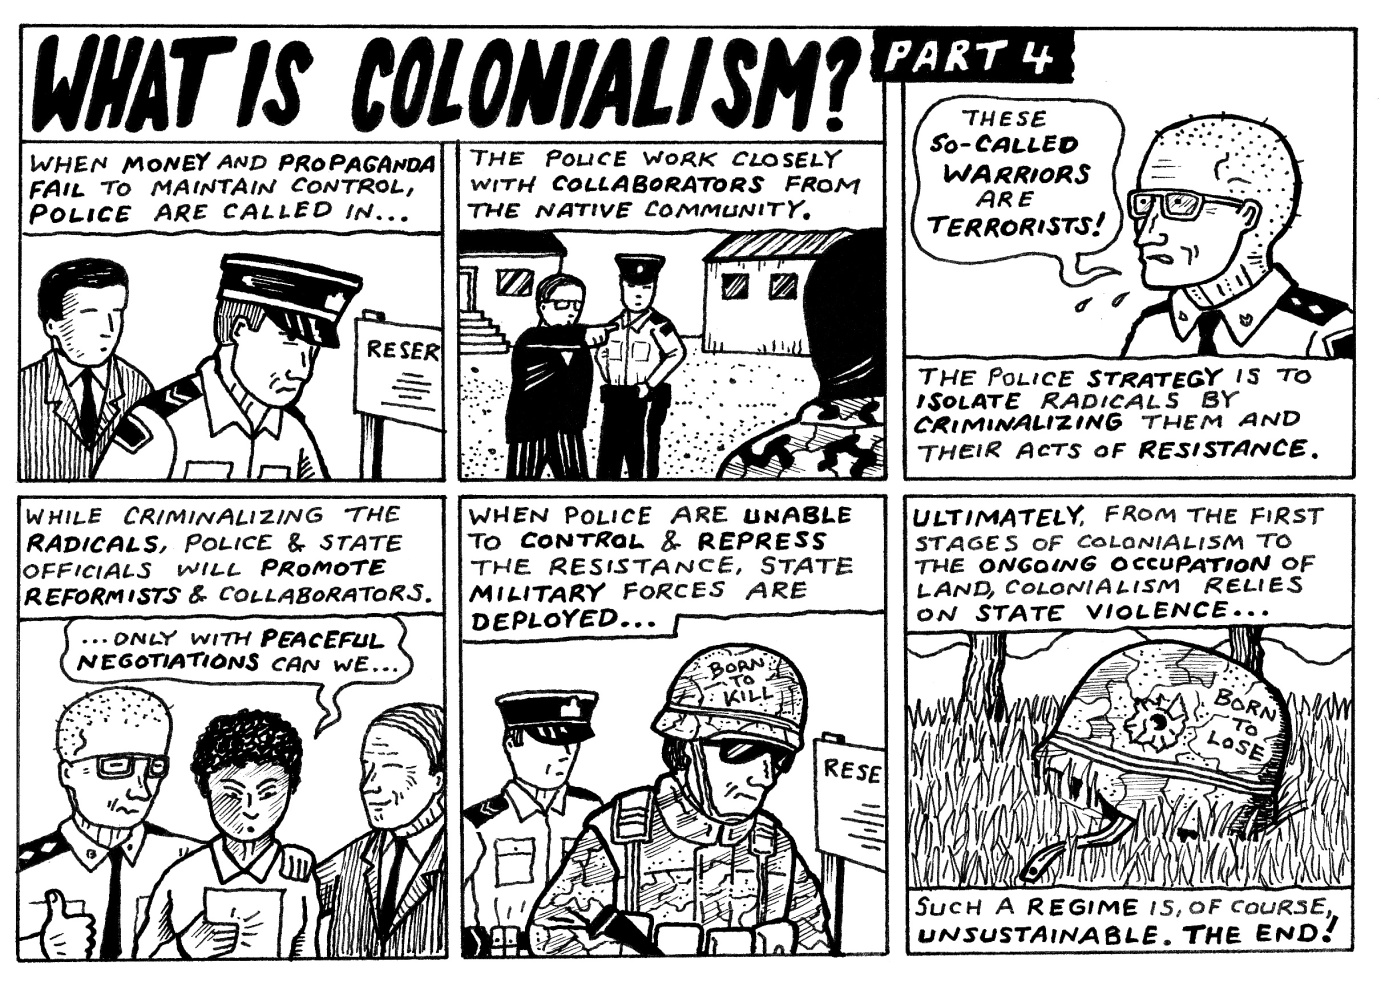 https://warriorpublications.files.wordpress.com/2014/10/colonialism-comic-4.jpg?w=1381&h=983